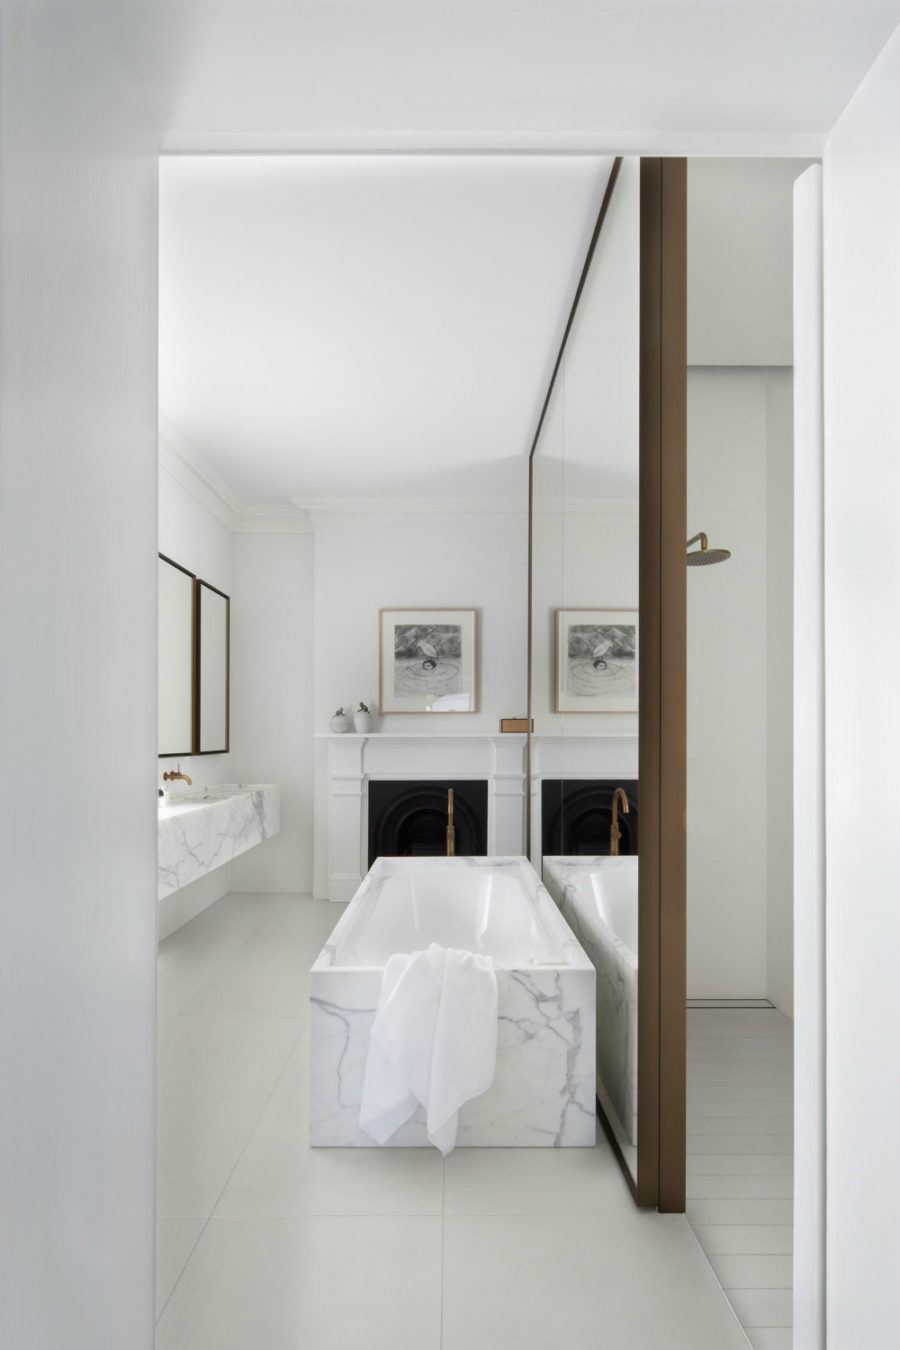 a marble bathtub in front of a mirror wall and mirrors on the opposite wall